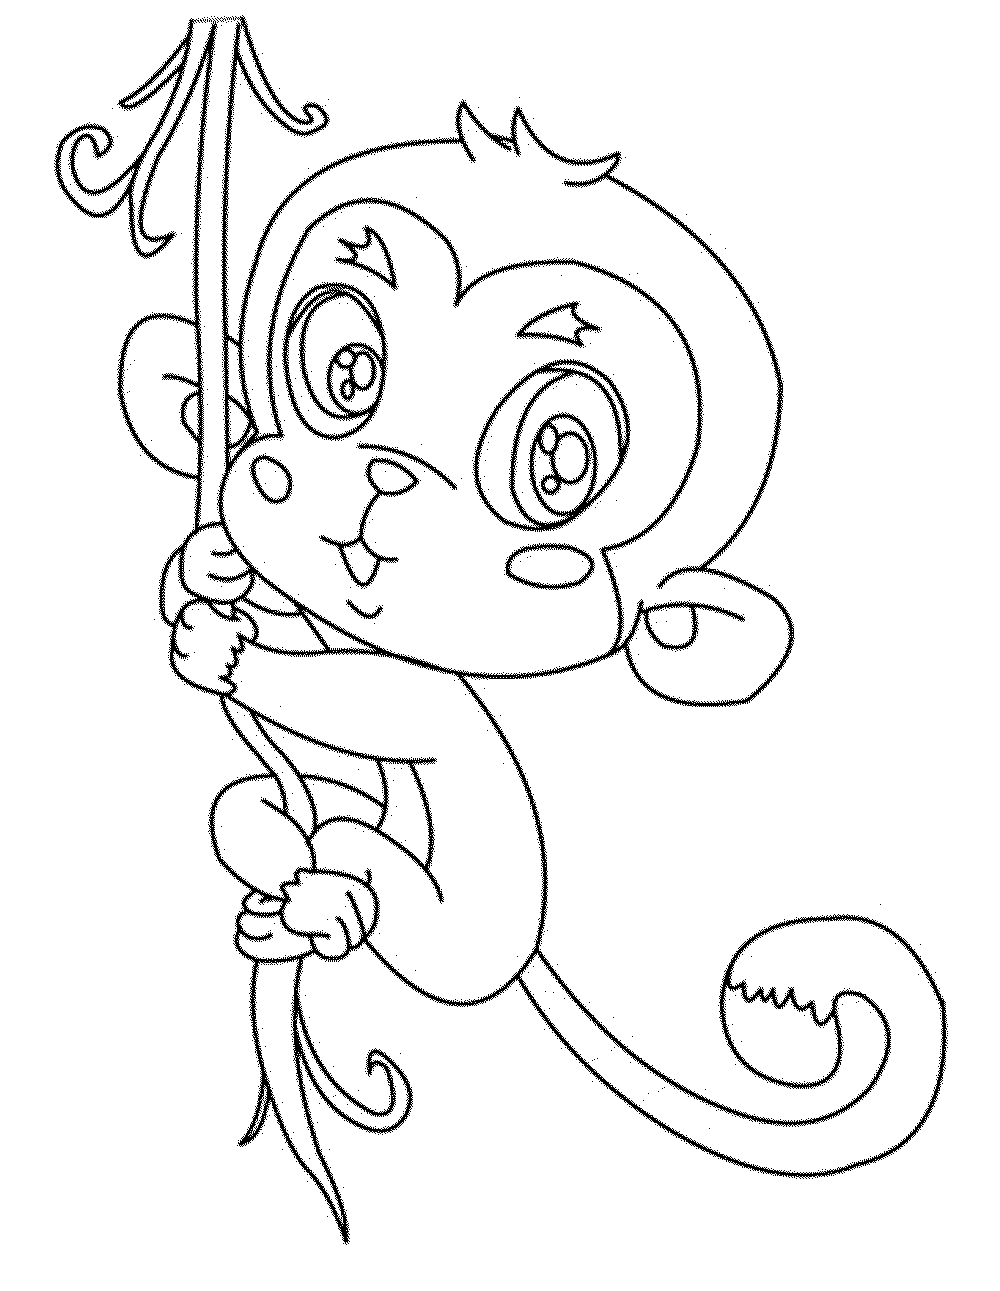 coloring picture of monkey monkeys to print for free monkeys kids coloring pages picture of monkey coloring